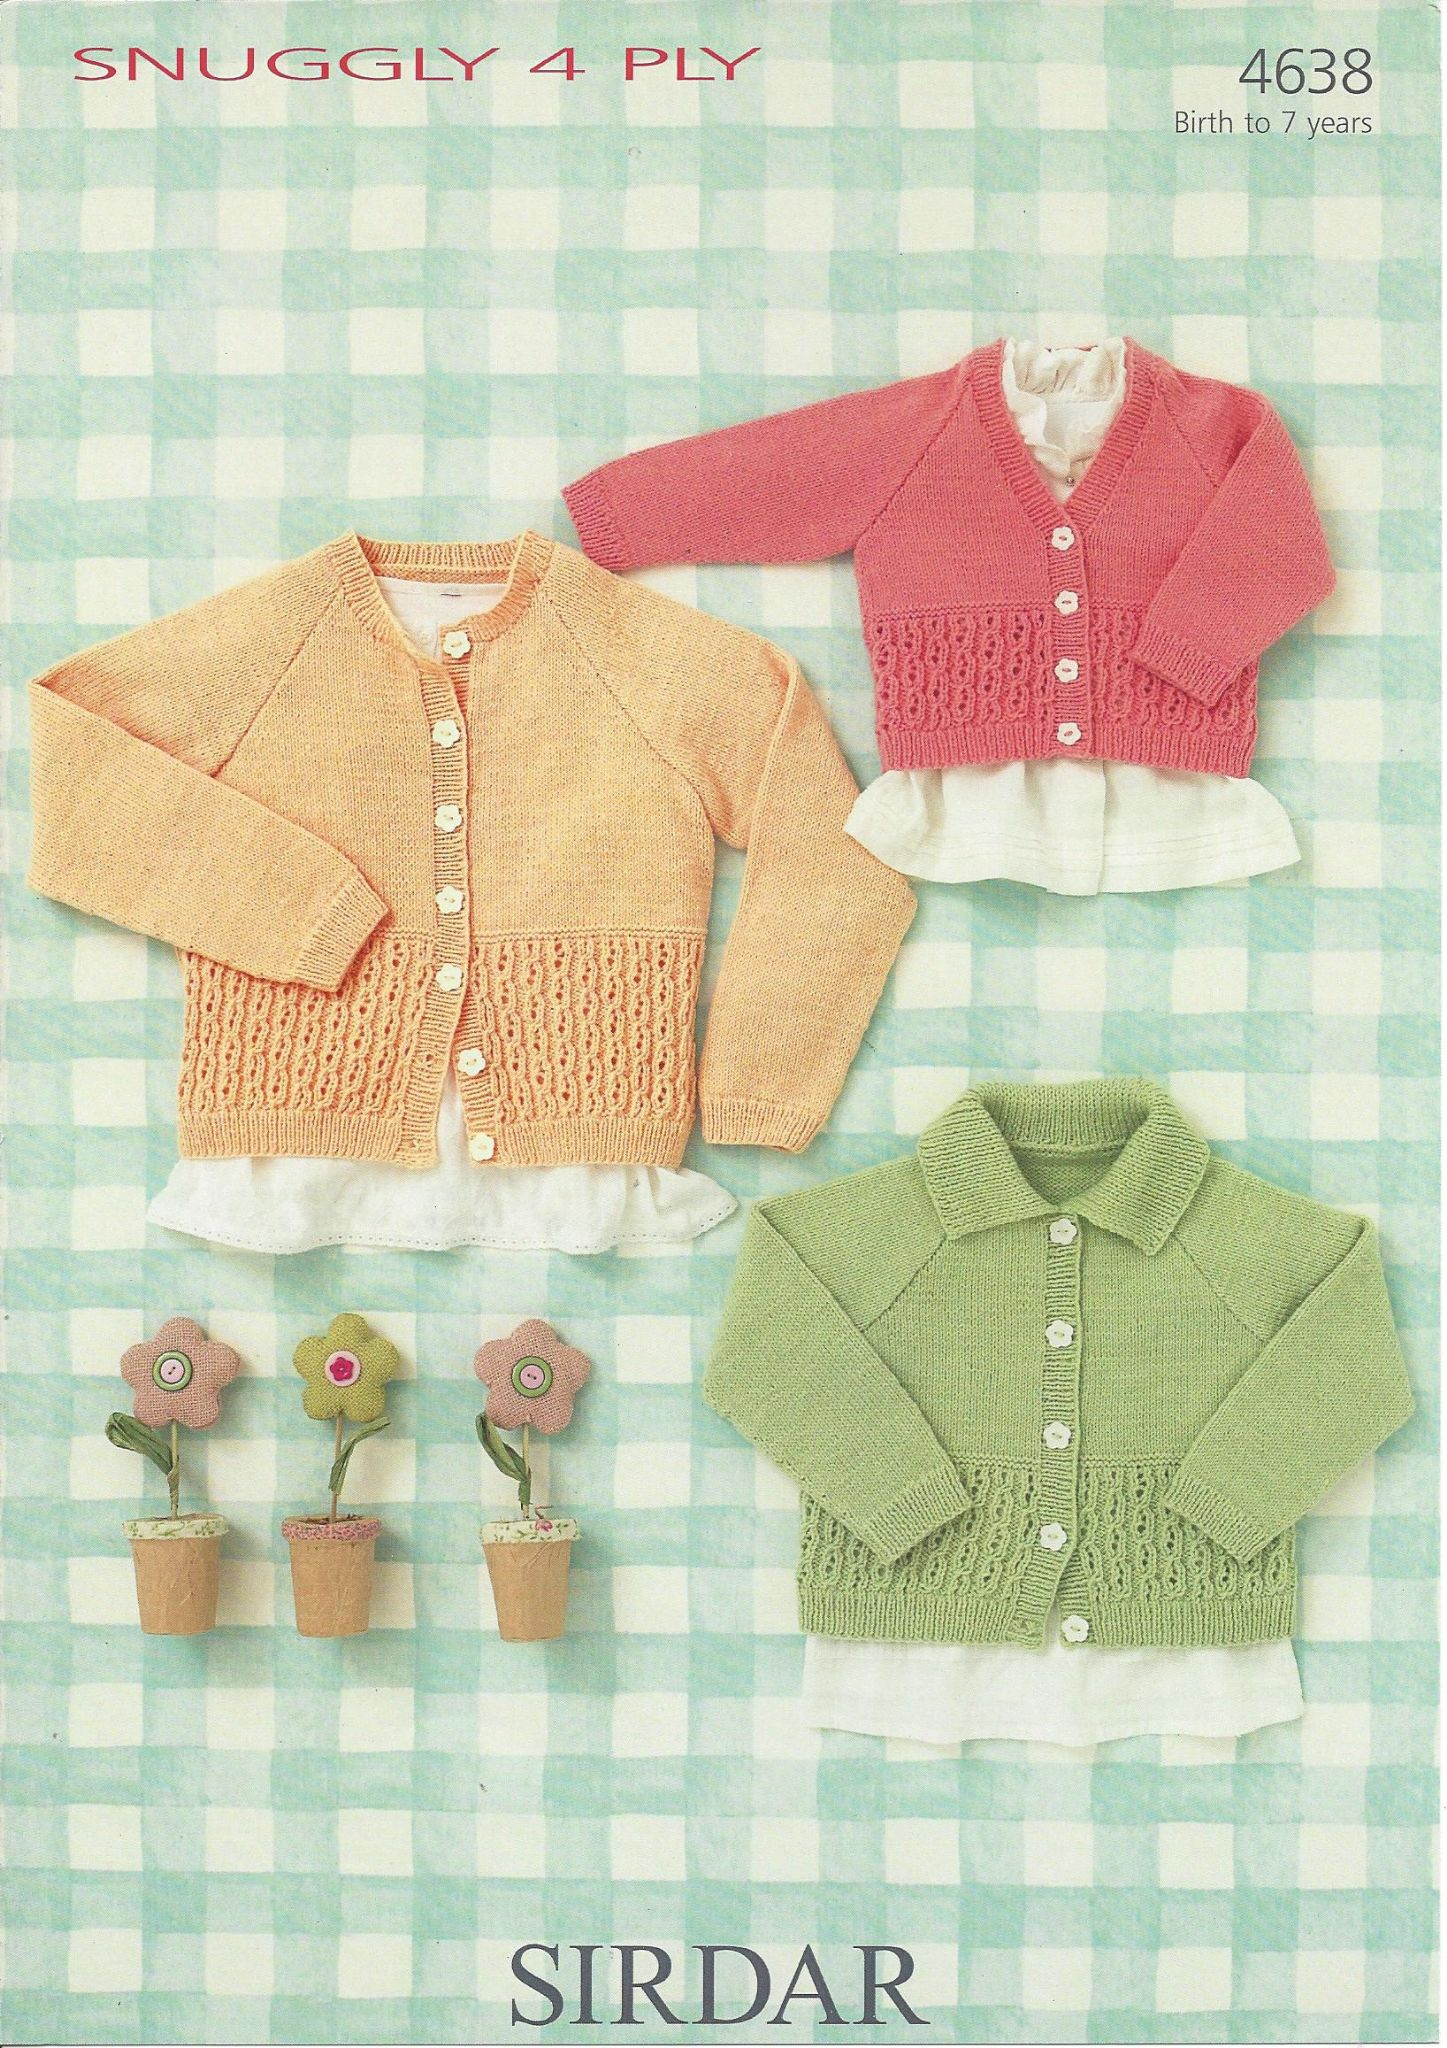 Sirdar Knitting Pattern : Sirdar Snuggly 4ply - 4638 Cardigans Knitting Pattern